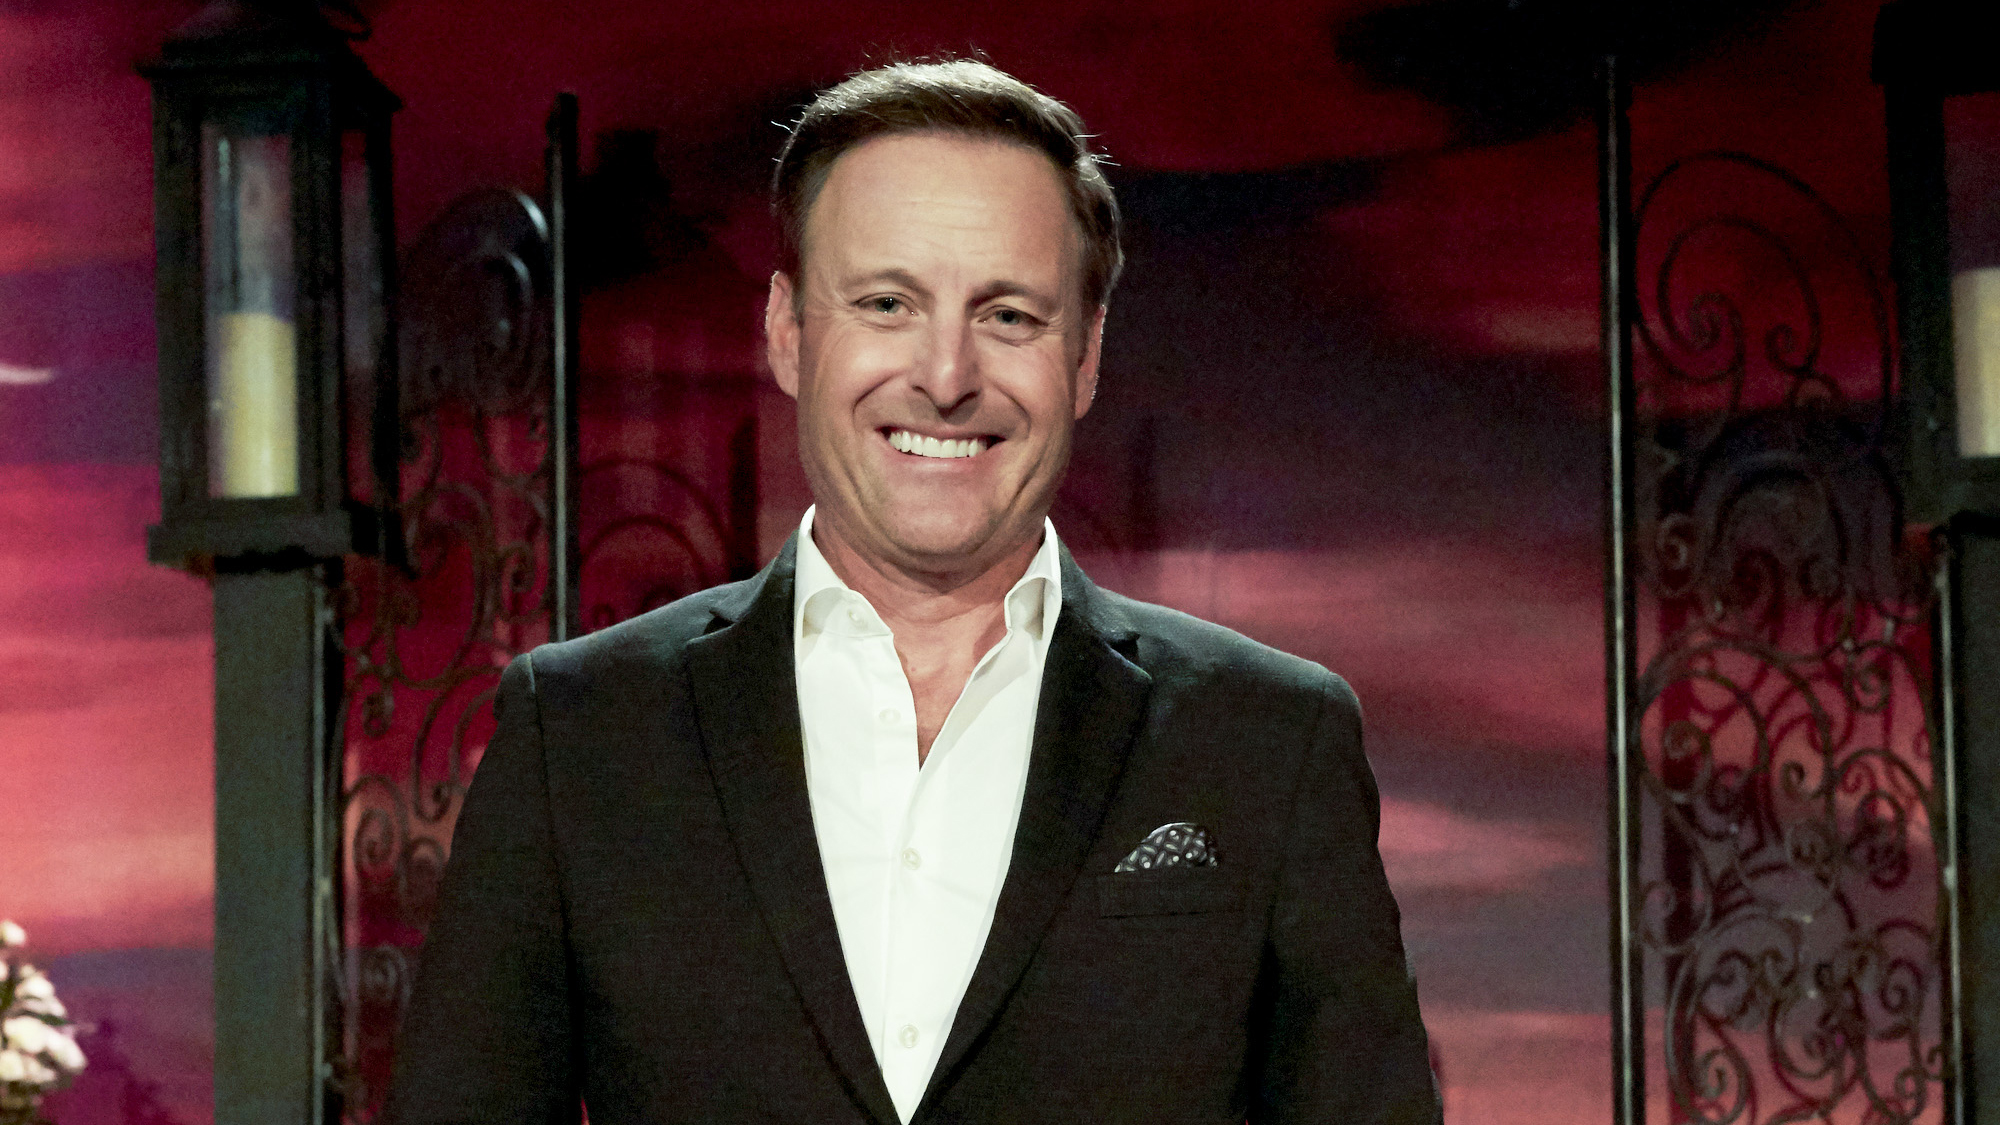 Chris Harrison received $9M 'Bachelor' exit payout: report